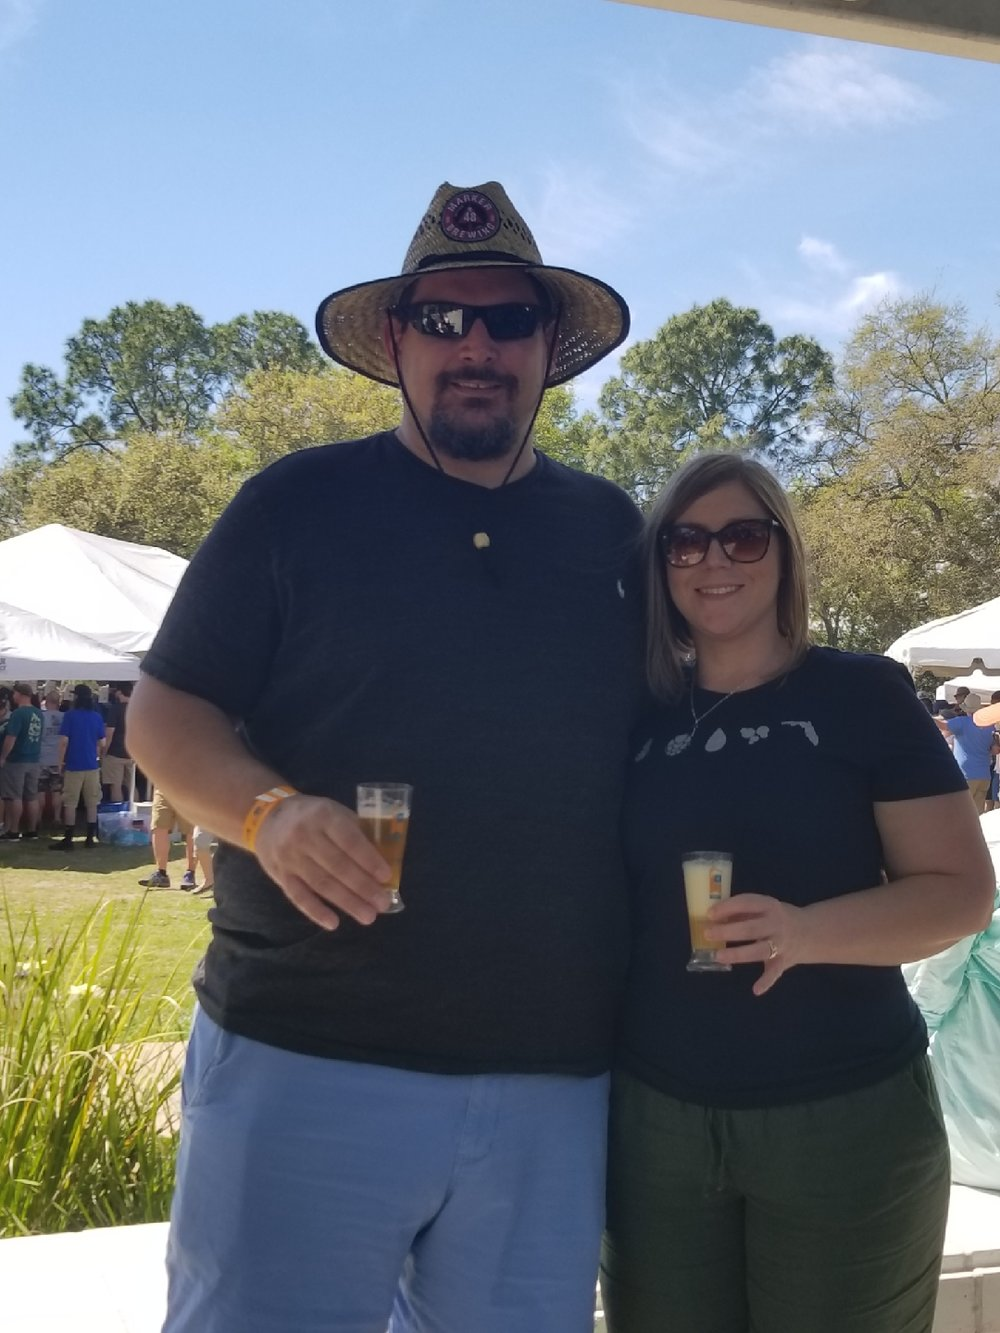 Manager, Michelle, and her husband Dave enjoying the beautiful day.